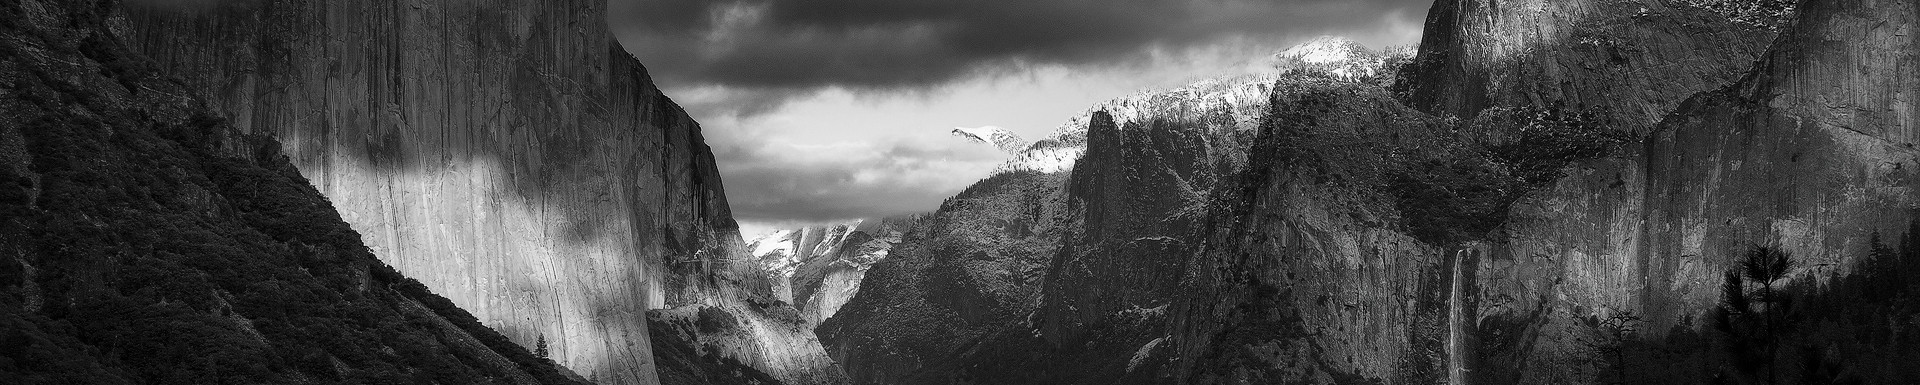 Shadows of Yosemite (black and white)